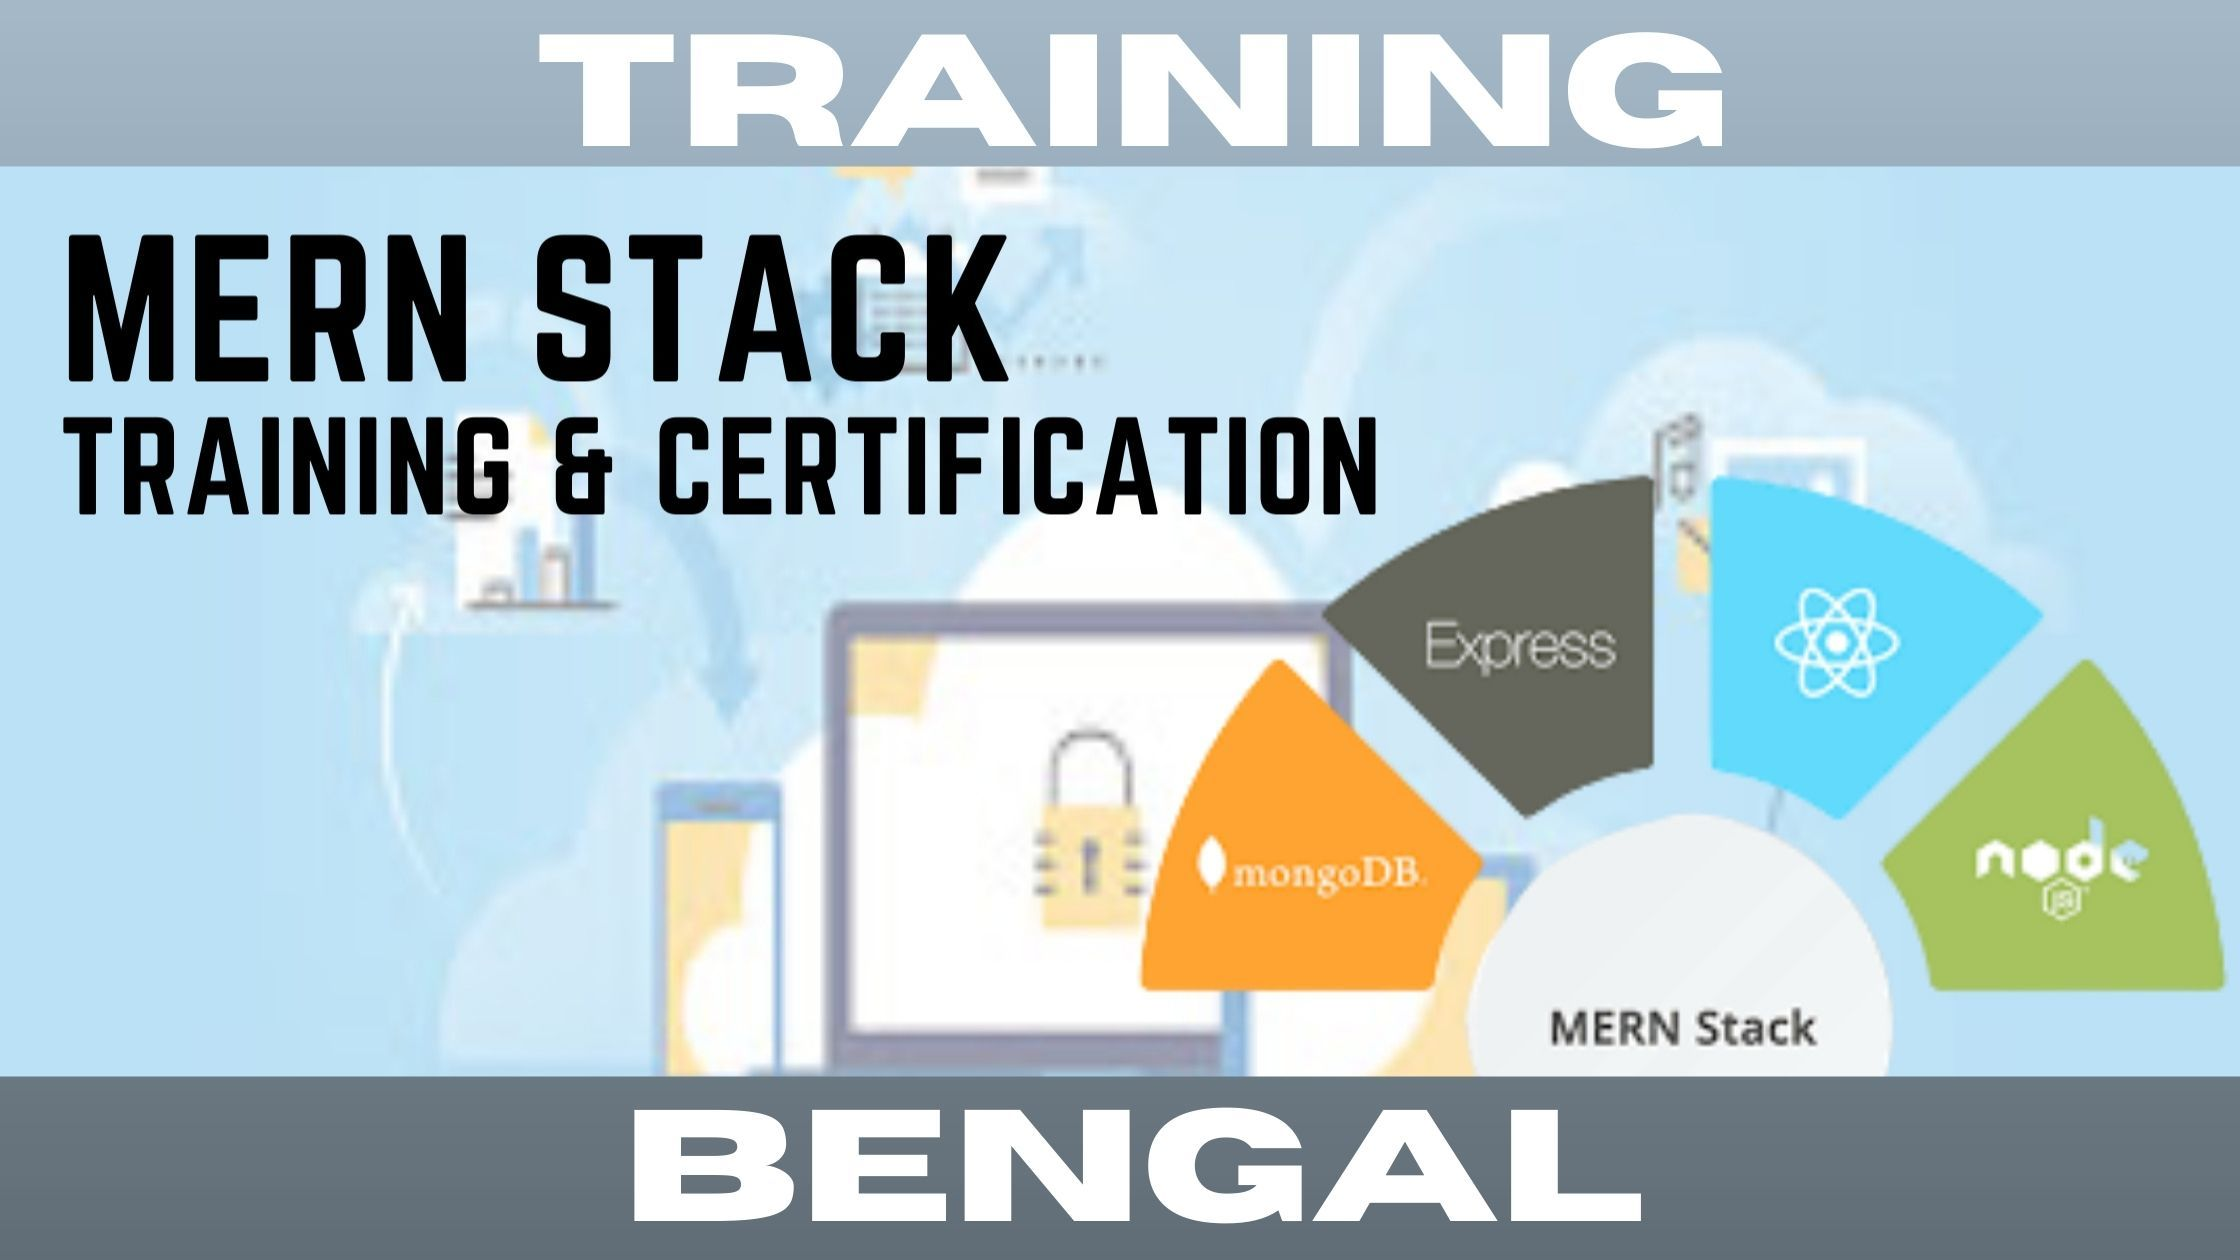 mern_stack_training_in_bengal-background.jpeg